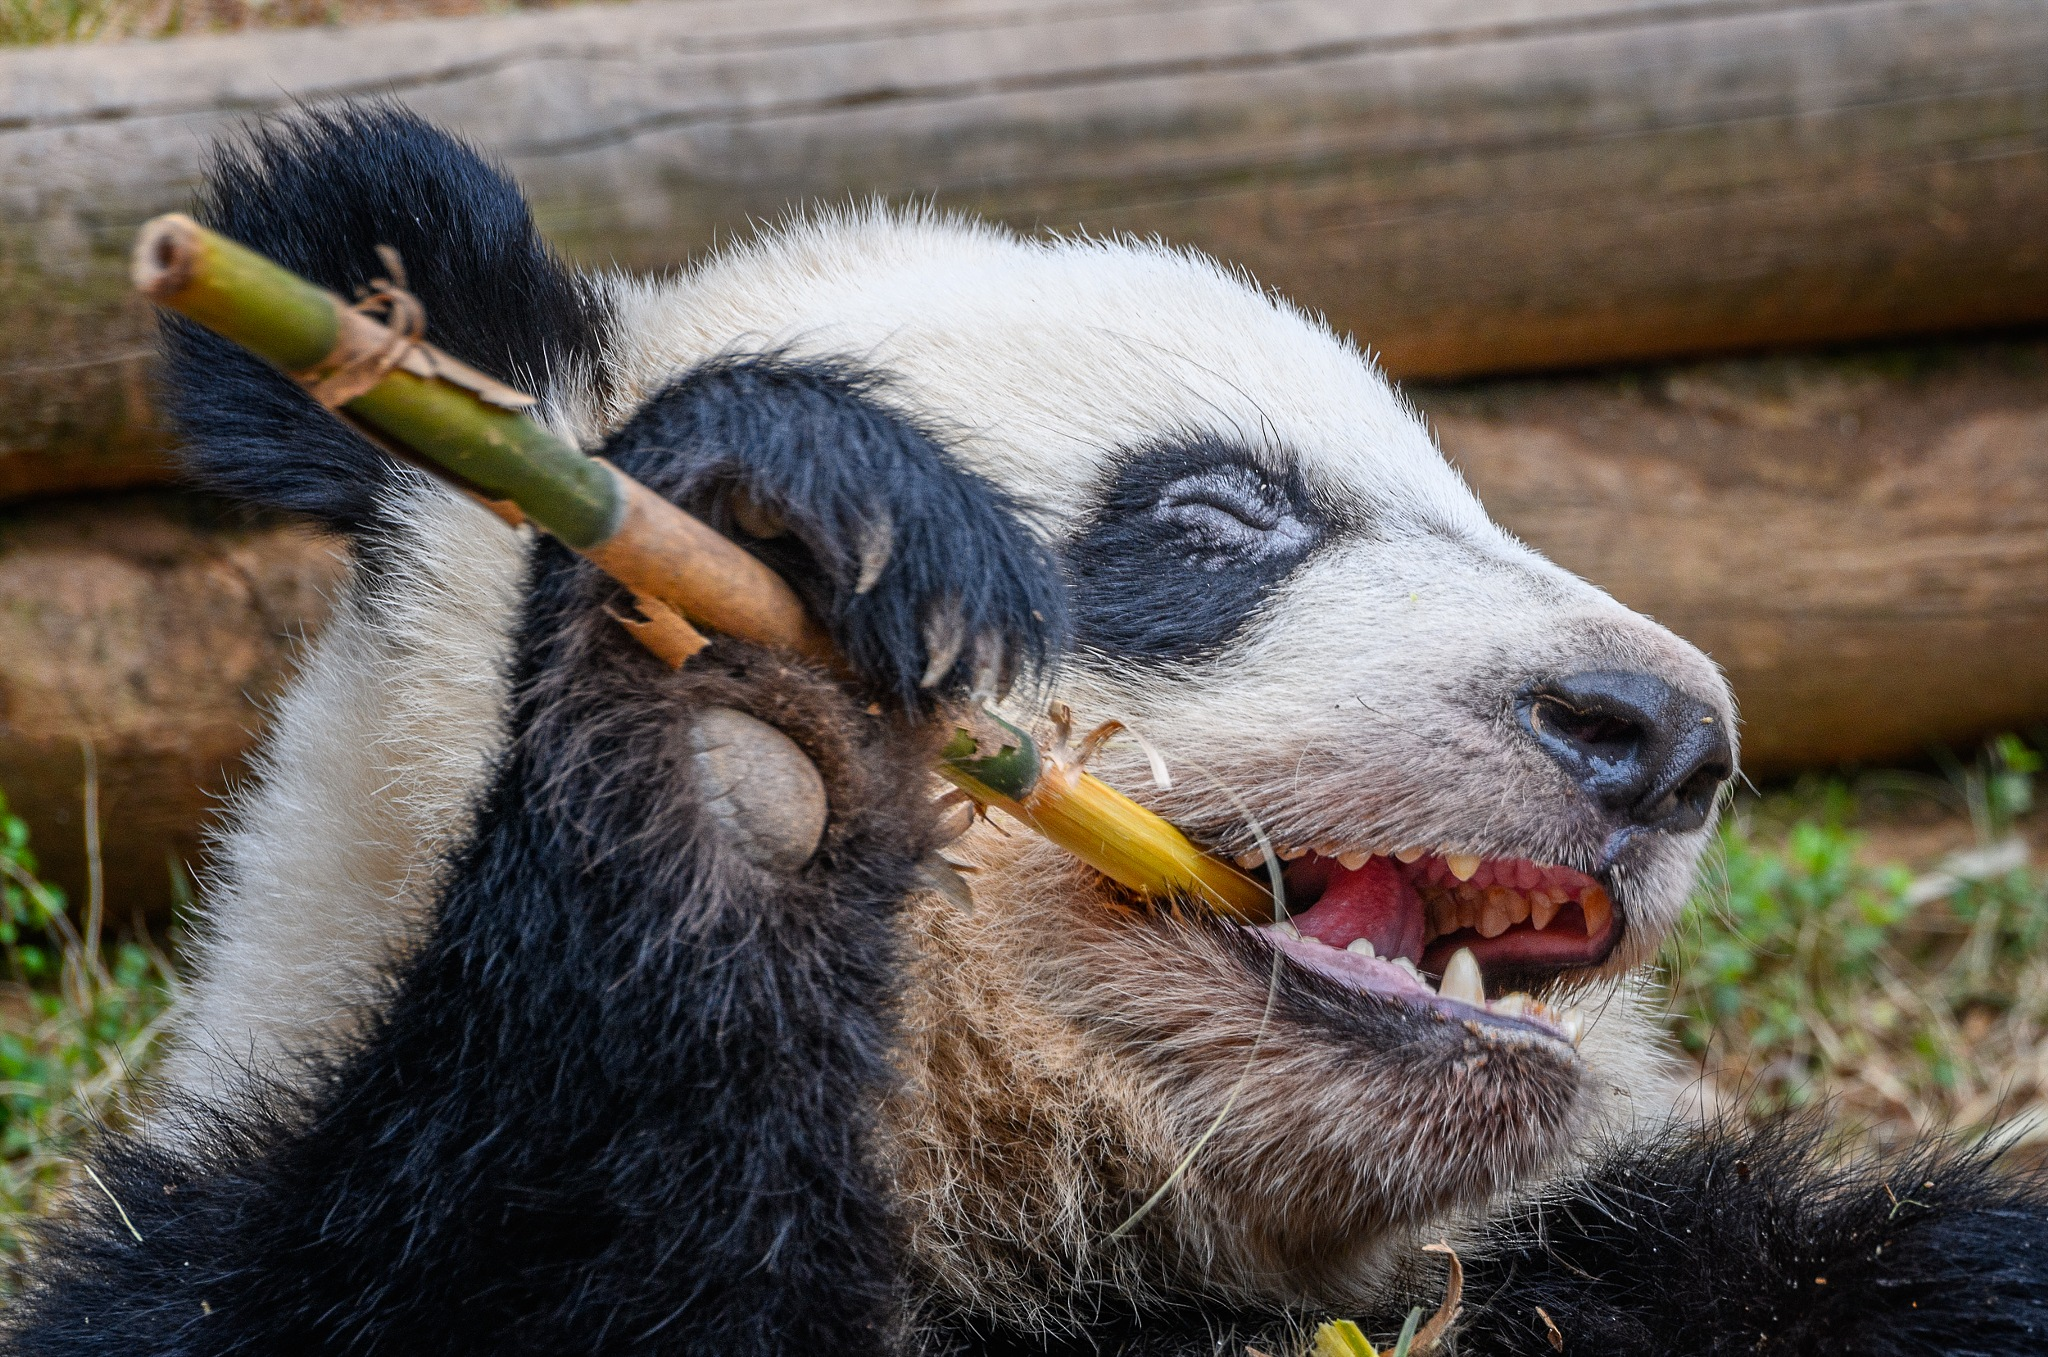 Lunchtime for a Giant Panda by Steve Director